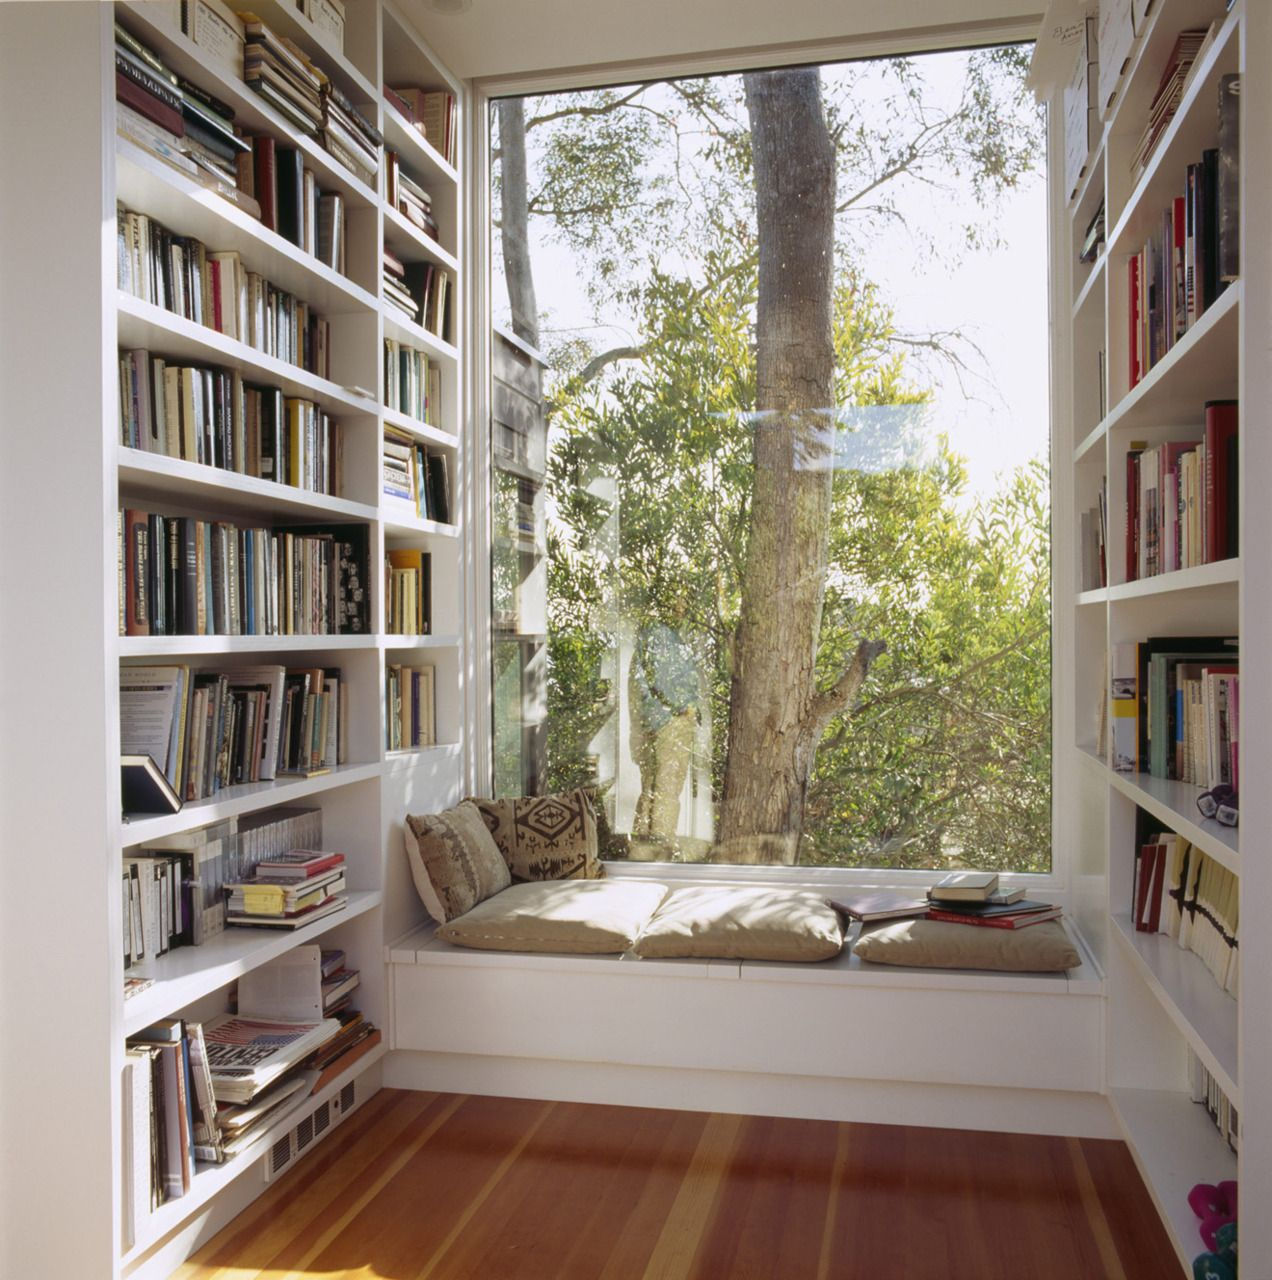 I want this window seat/bookshelves combo!